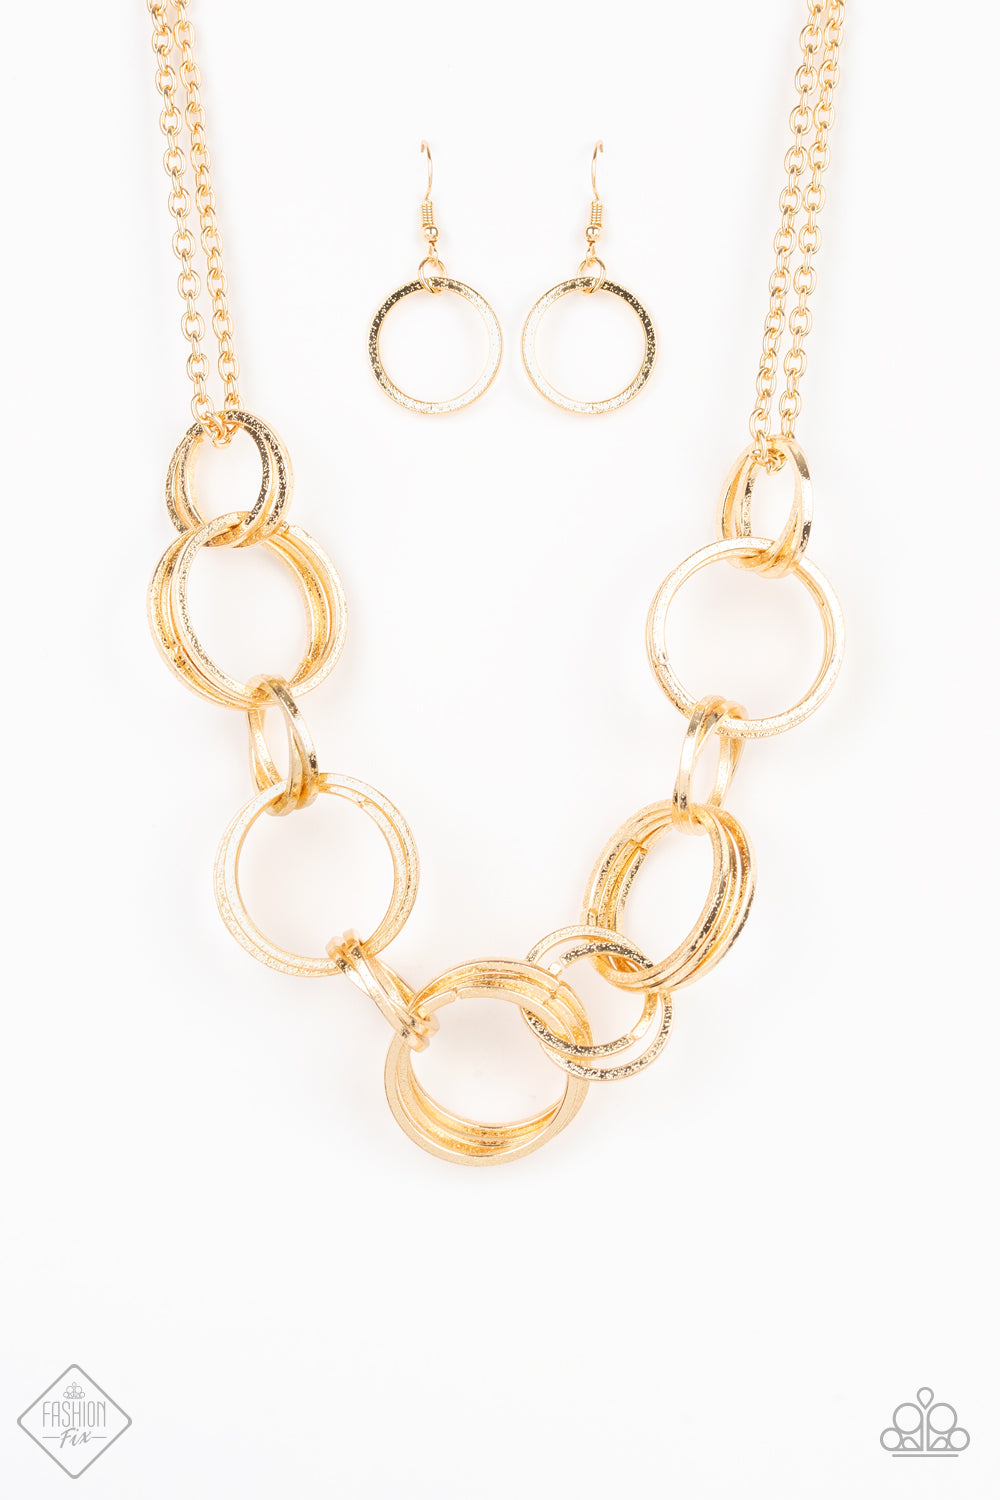 Paparazzi Jump Into The Ring Gold Necklace Trend Blend Fashion